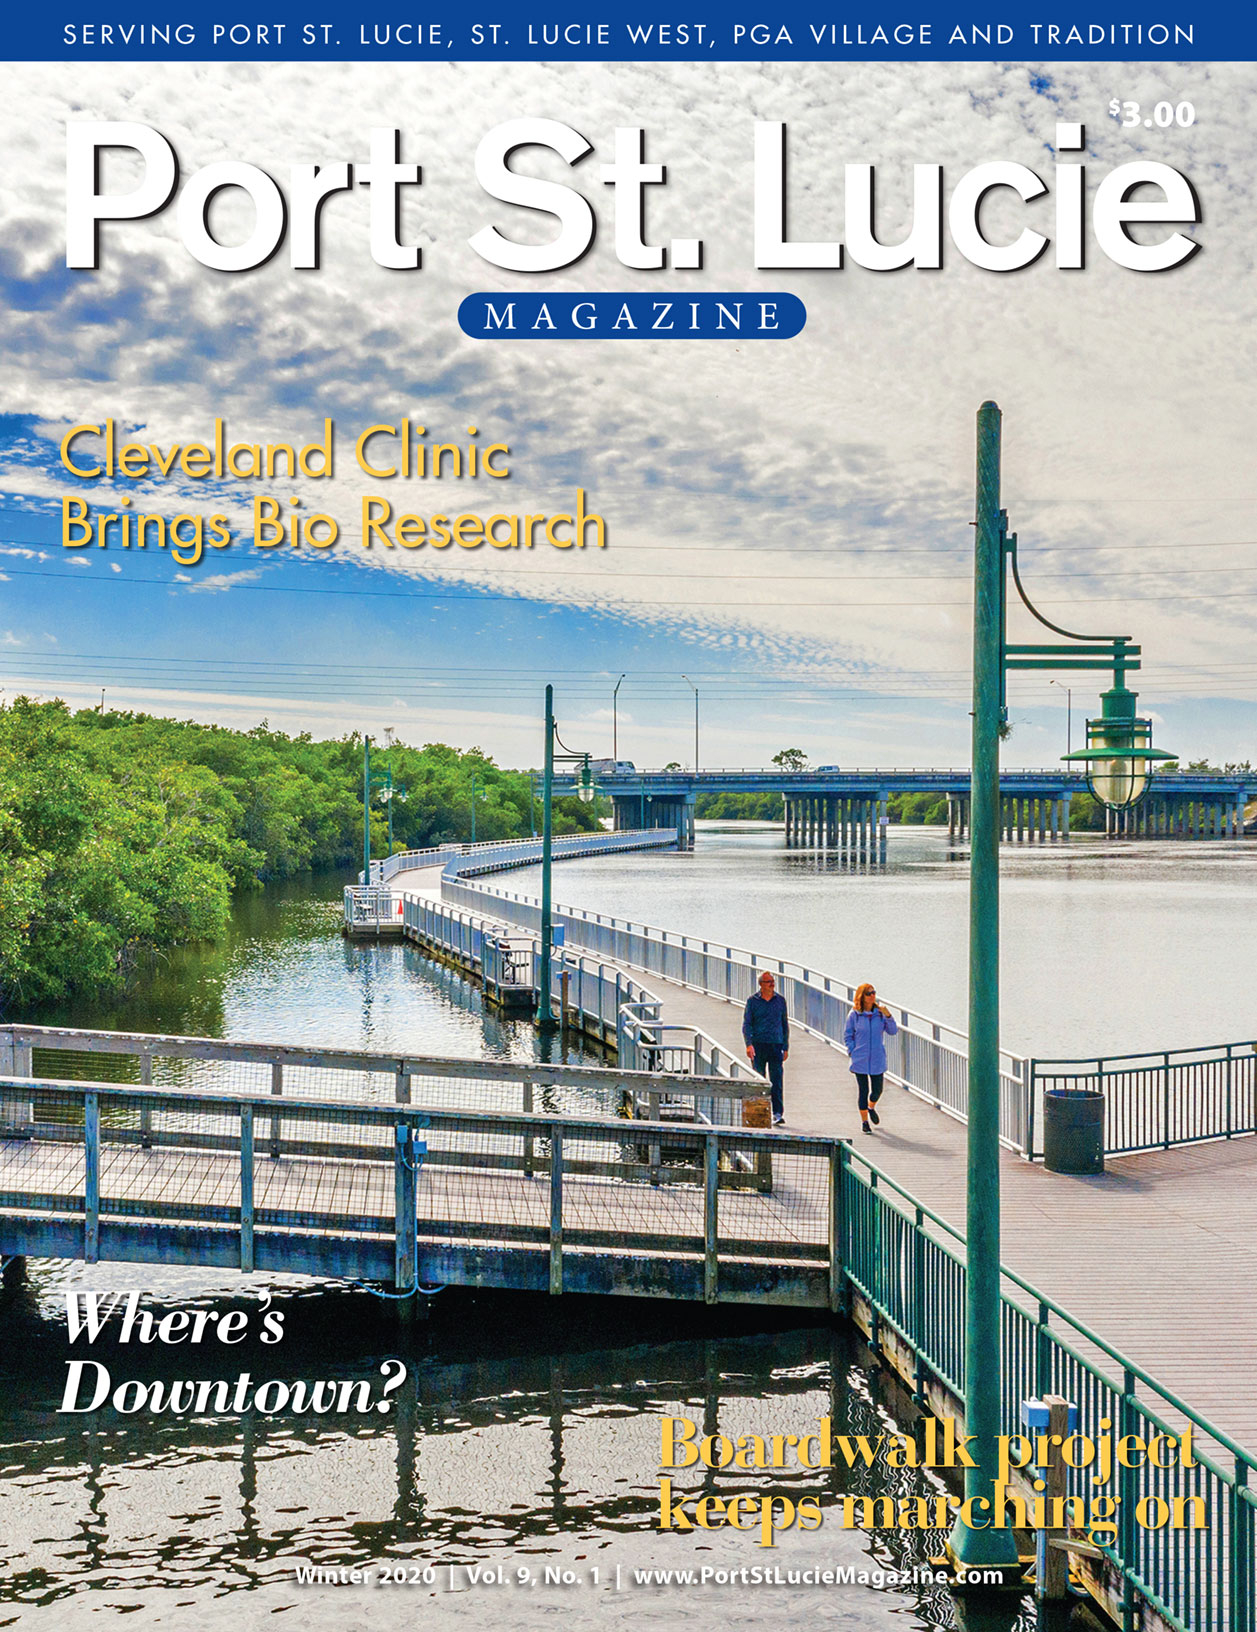 Port St. Lucie Magazine - Vol. 7, No. 4